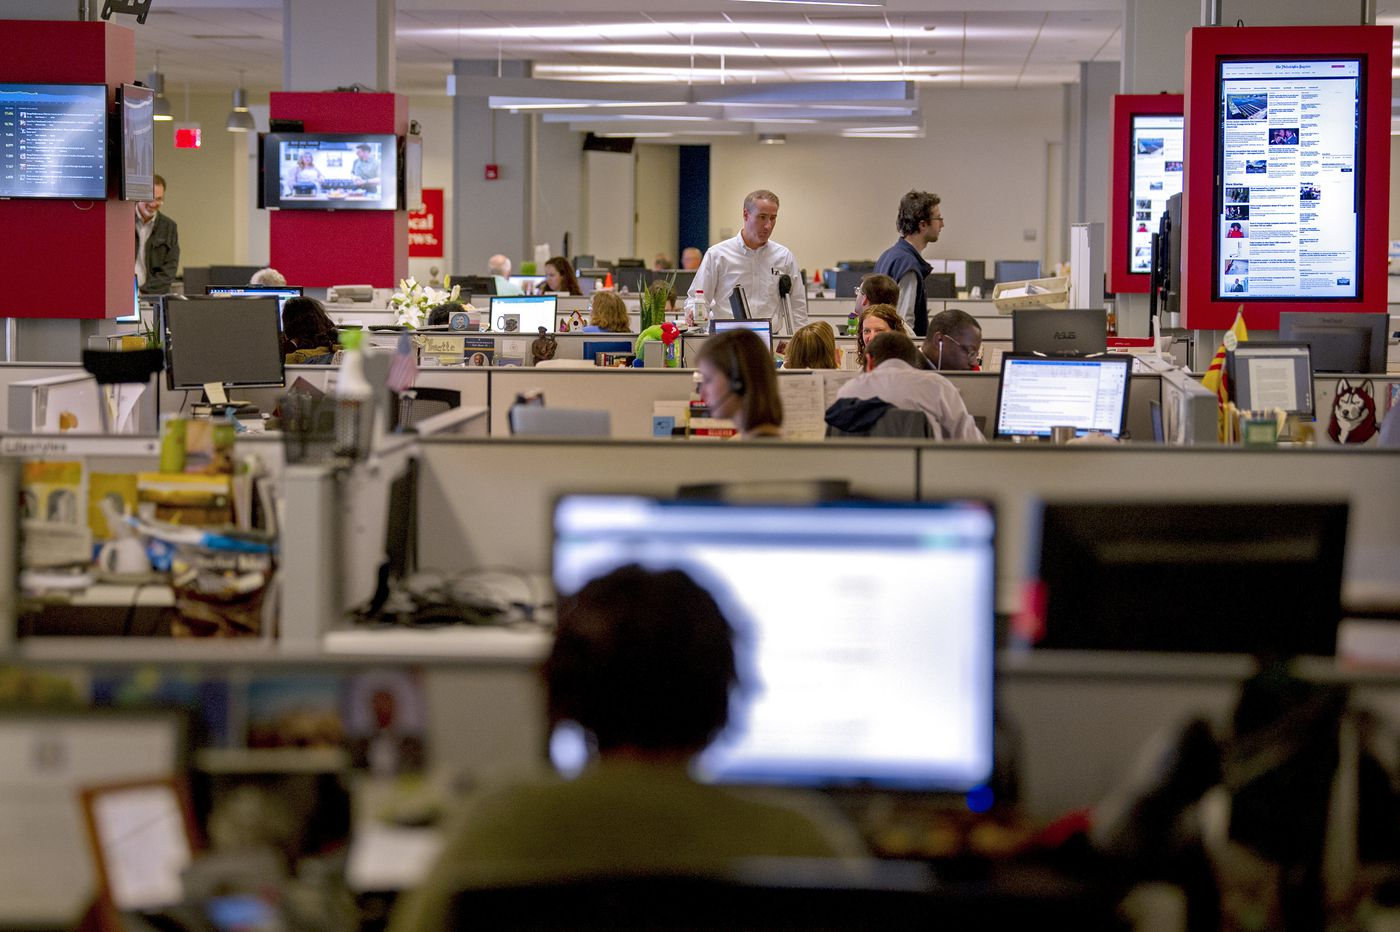 NewsGuild, Inquirer agree to tentative labor pact with first across-the-board raise in years